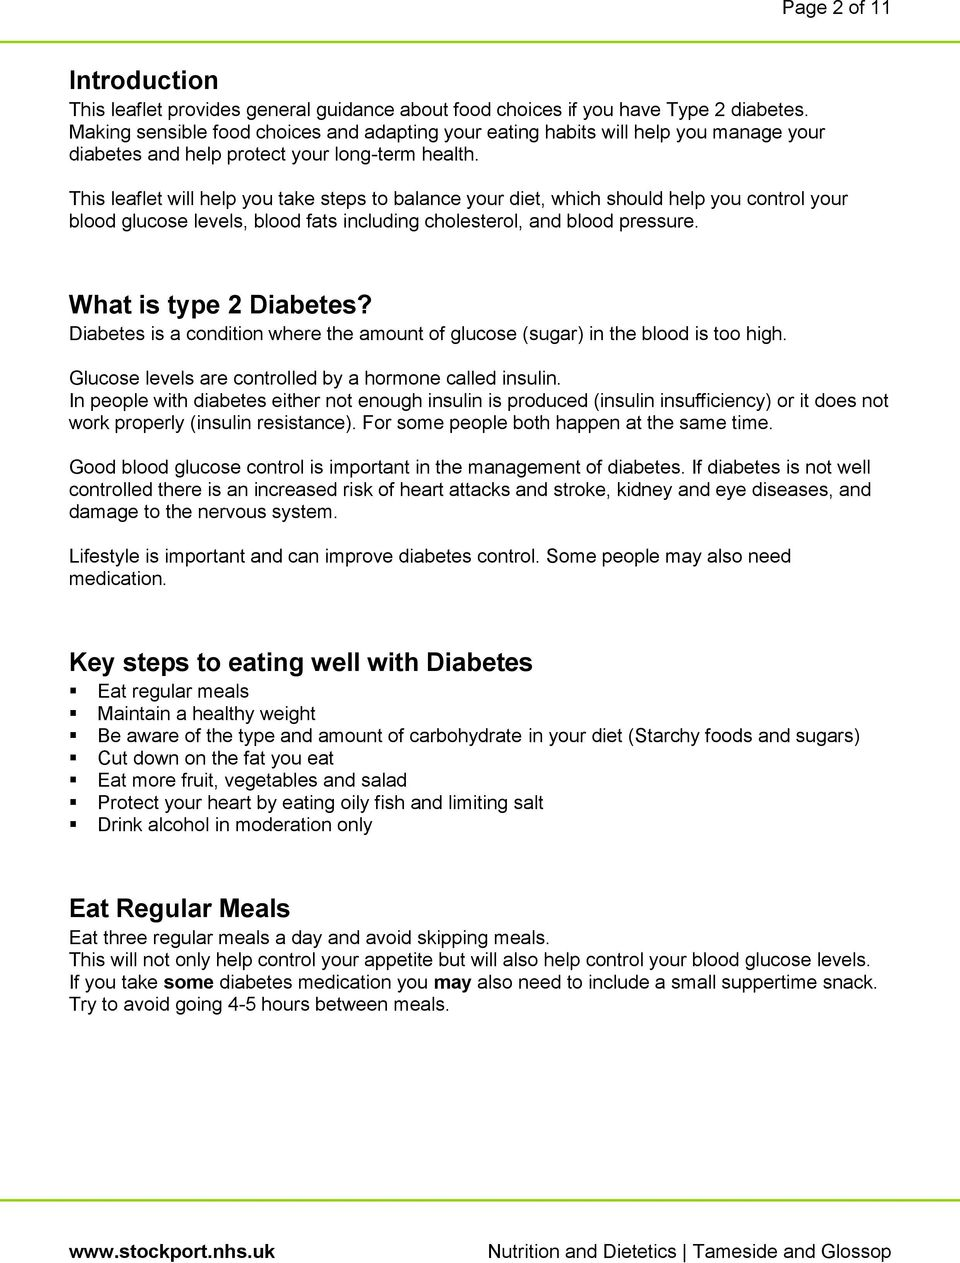 This leaflet will help you take steps to balance your diet, which should help you control your blood glucose levels, blood fats including cholesterol, and blood pressure. What is type 2 Diabetes?